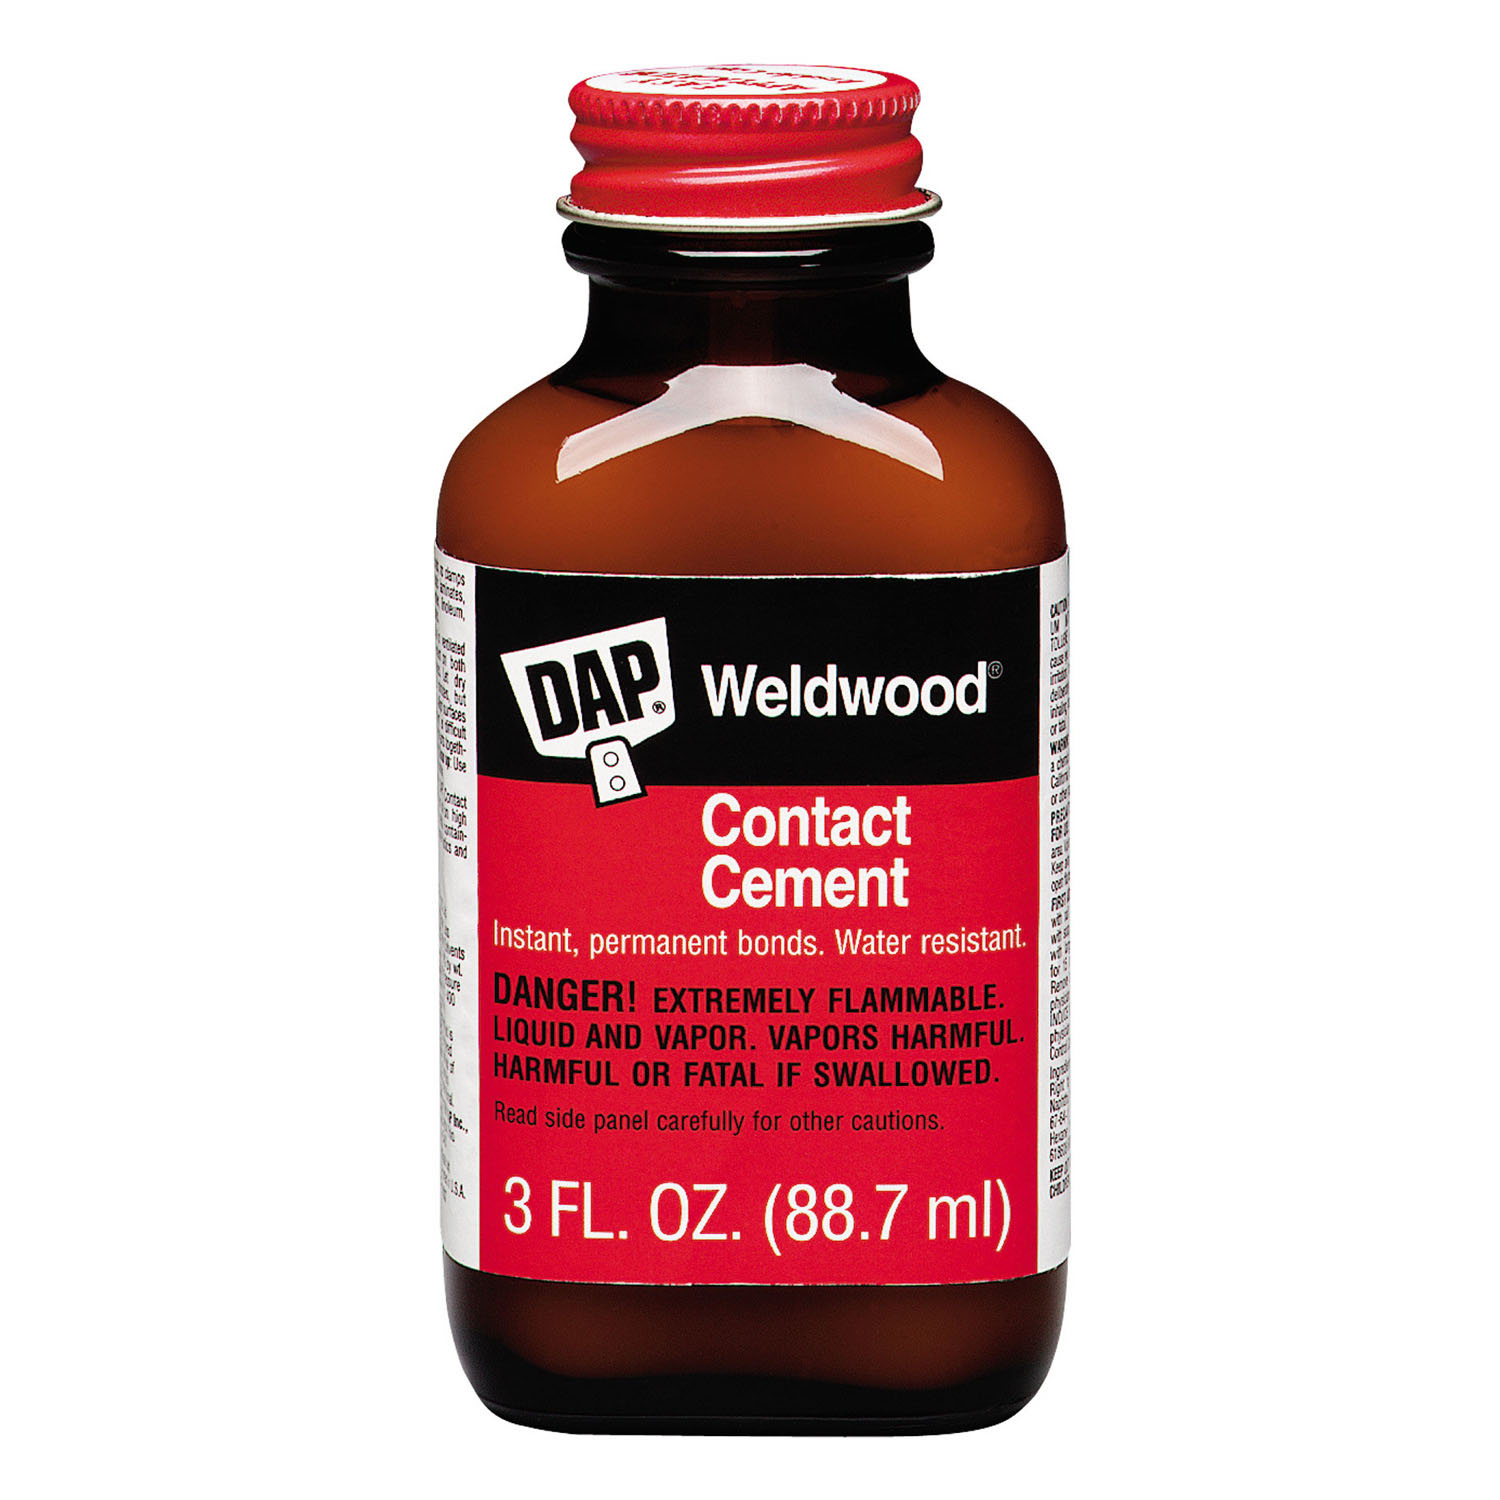 DAP Weldwood High Strength Rubber Contact Cement 3 oz. The Dap weld wood 3 fluid Oz. original contact cement is a multi-purpose neoprene rubber adhesive that forms an instant, high-strength bond on a variety of surfaces. This adhesive resists the effects of heat, water, weather, grease, oil and household chemicals.